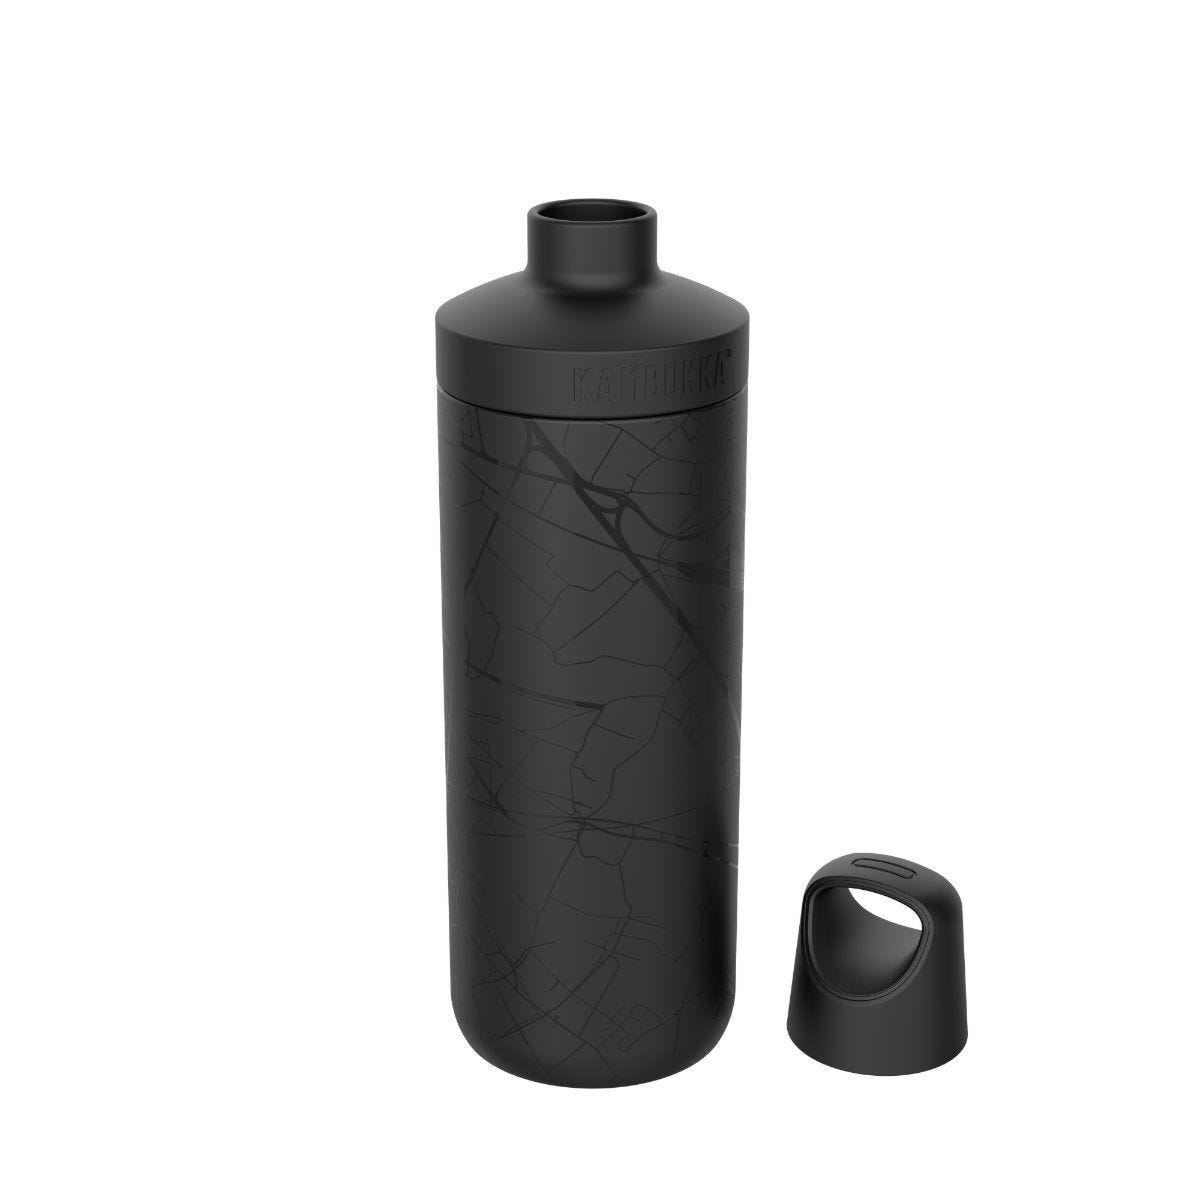 Kambukka Reno Insulated Water Bottle 500ml - Hasselt